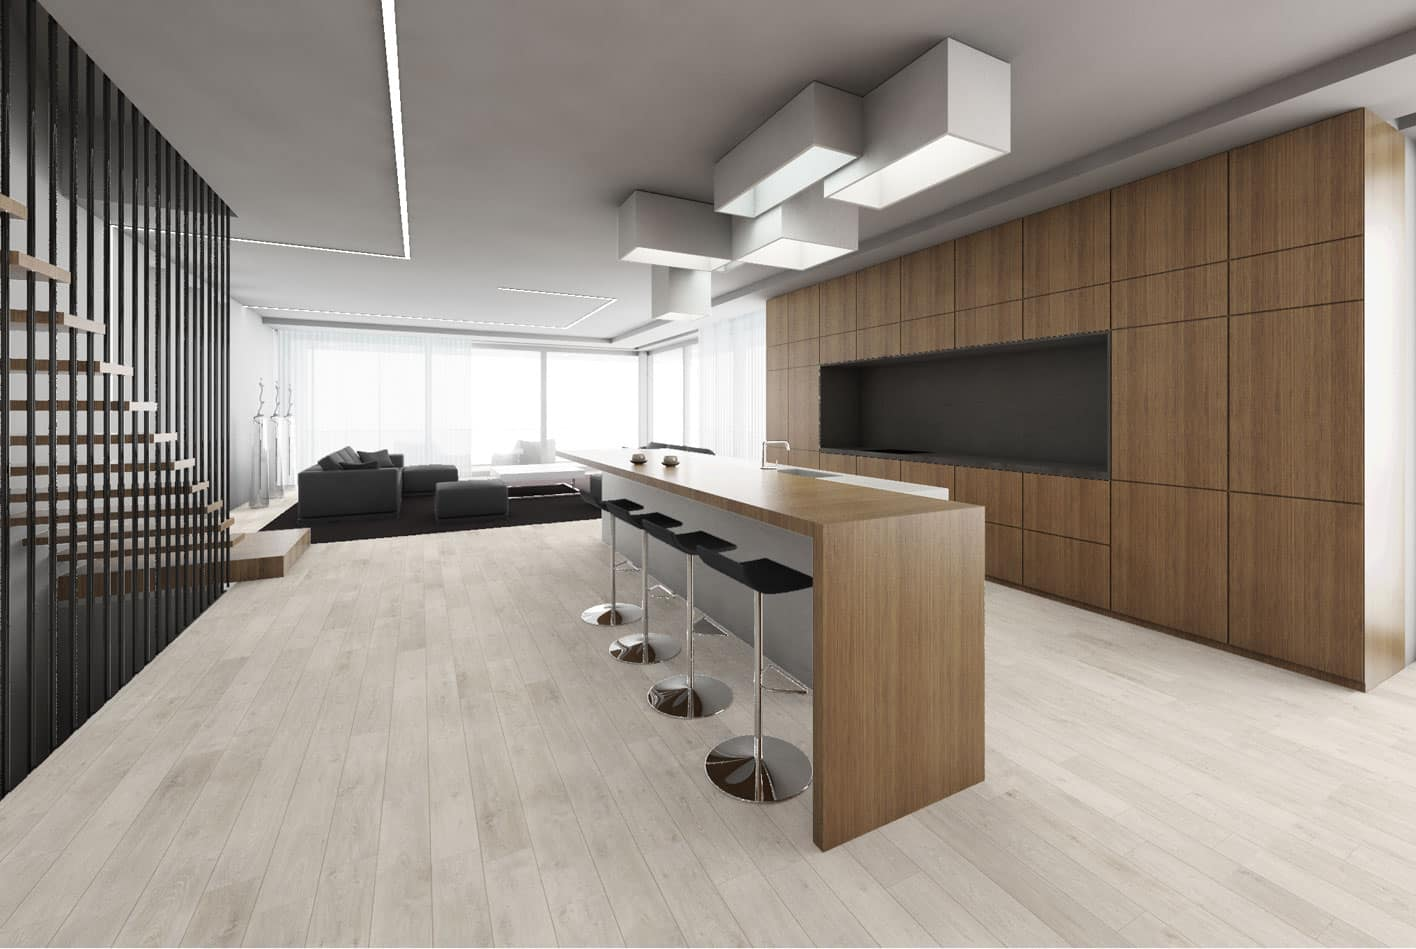 Central island with the bar stool group and black colore sofa